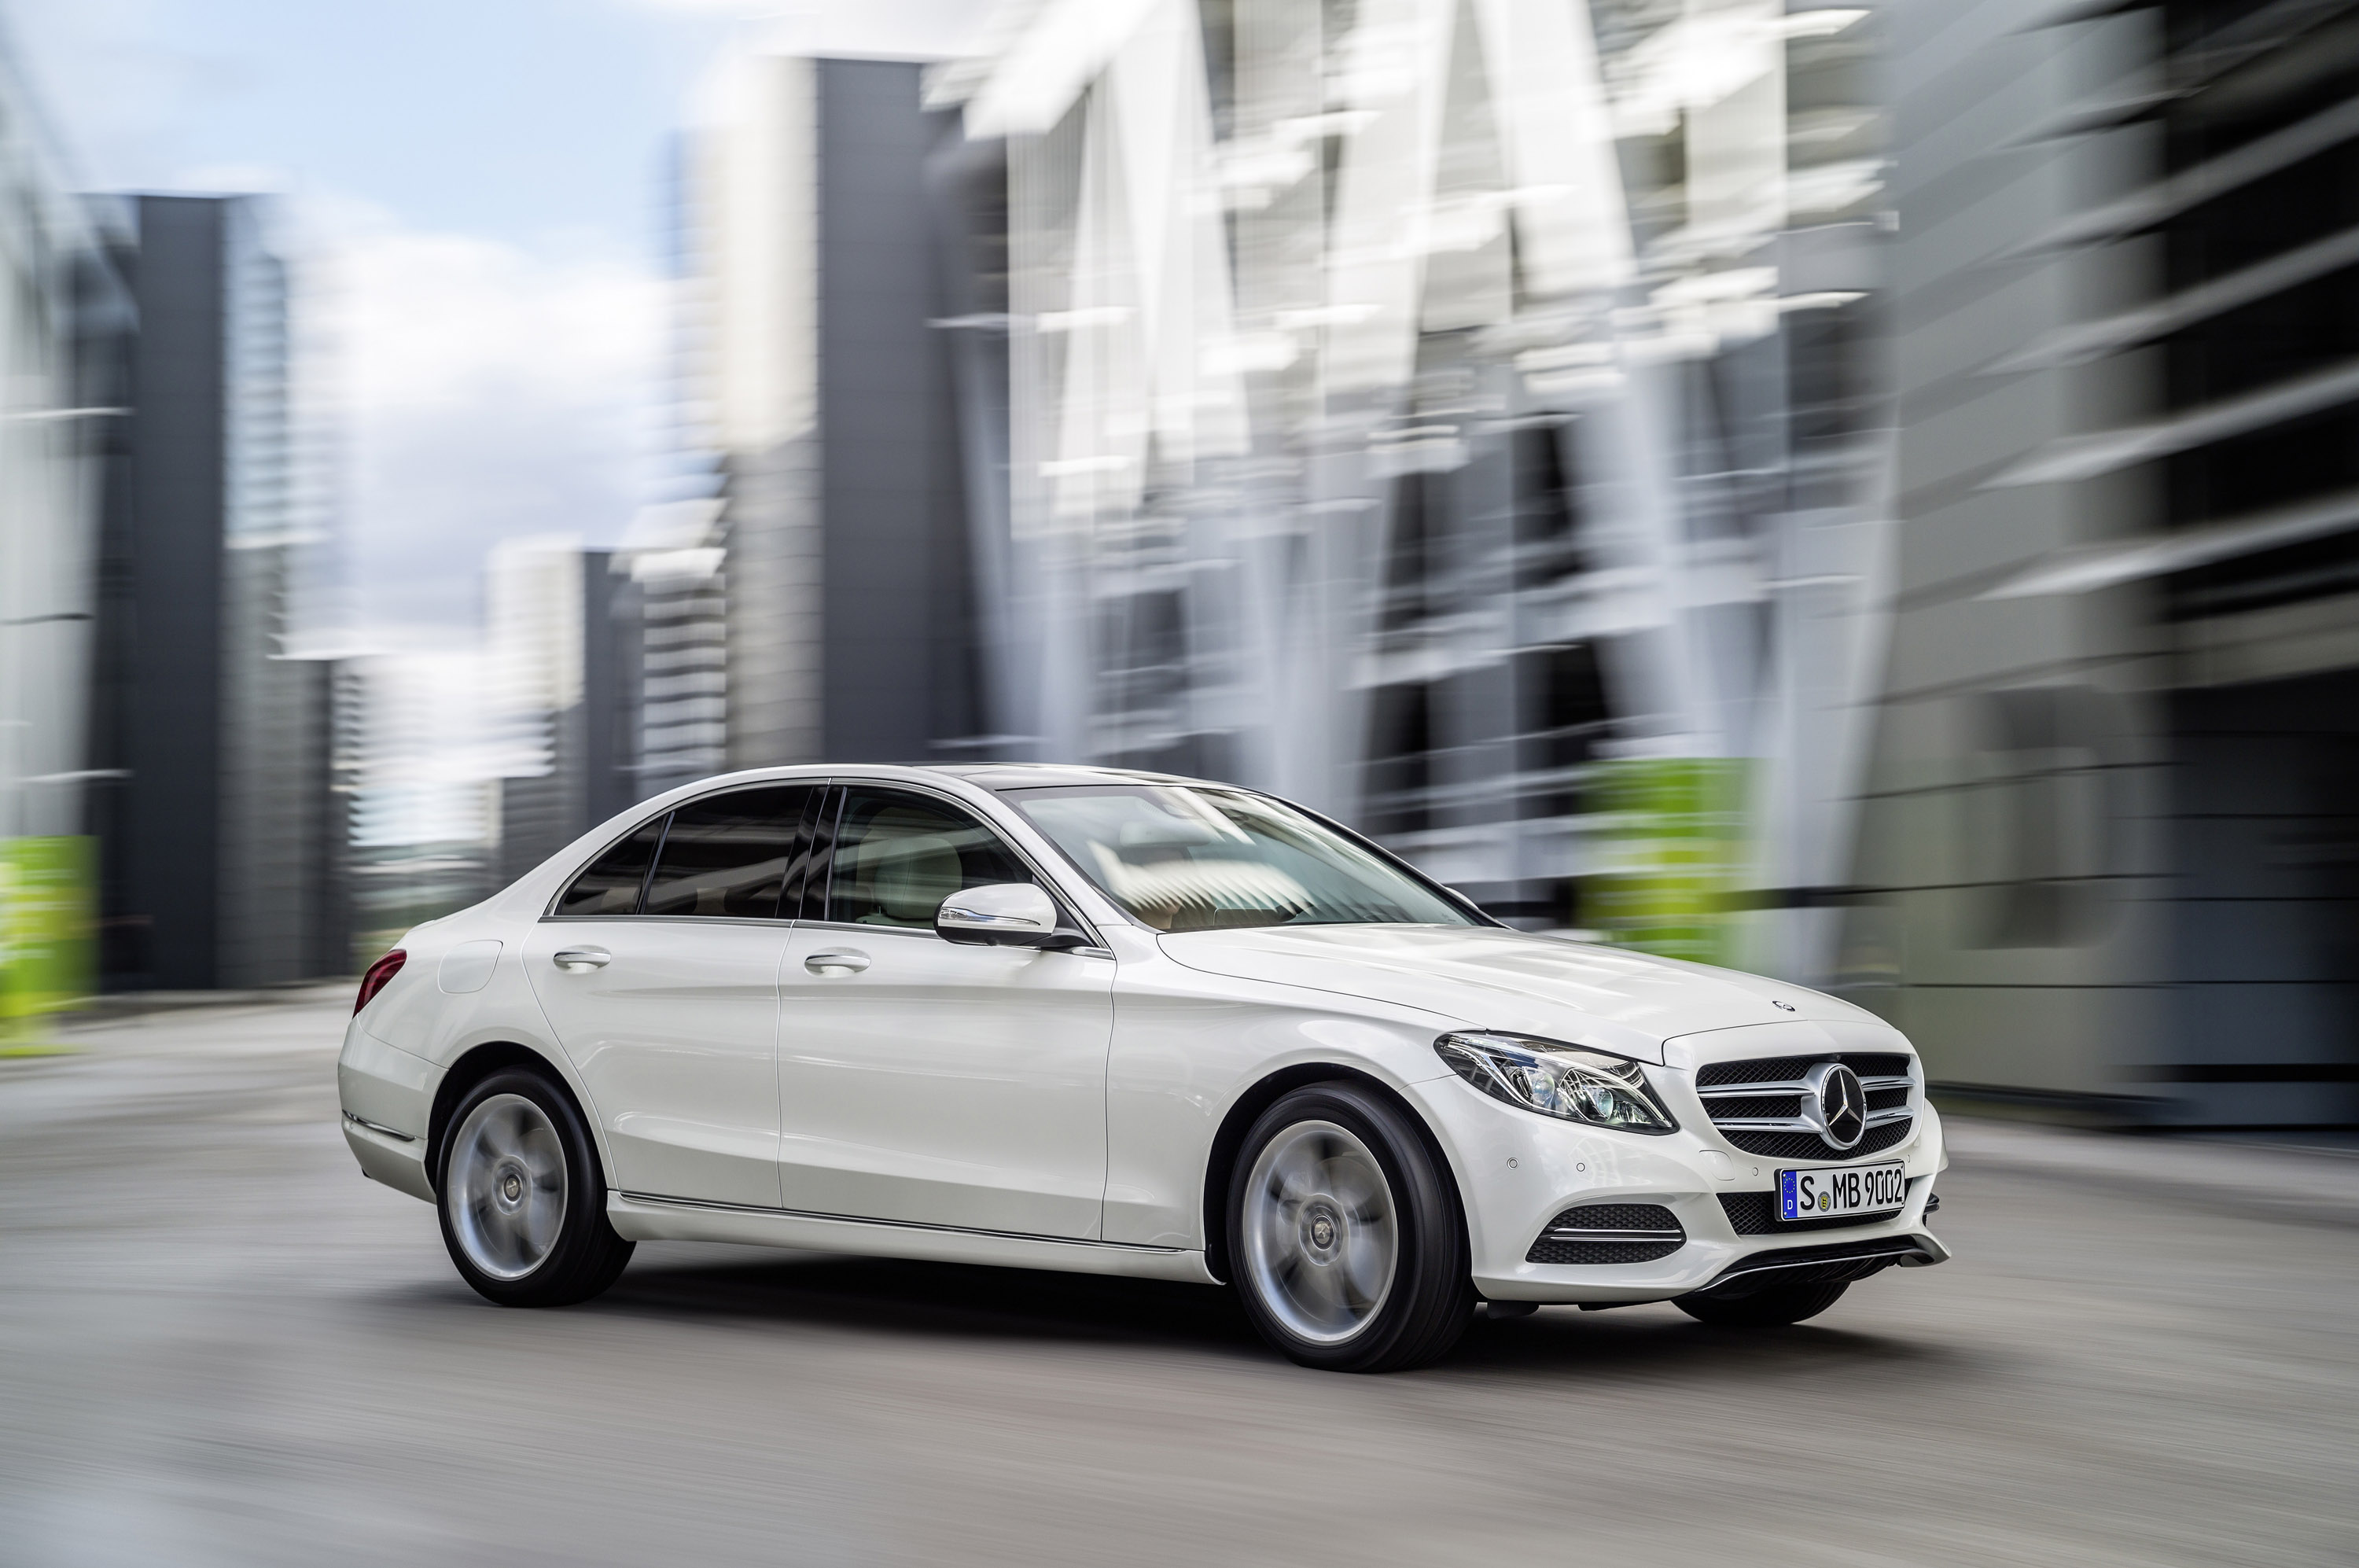 2015 mercedes benz c class sedan us pricing announced for New mercedes benz s class 2014